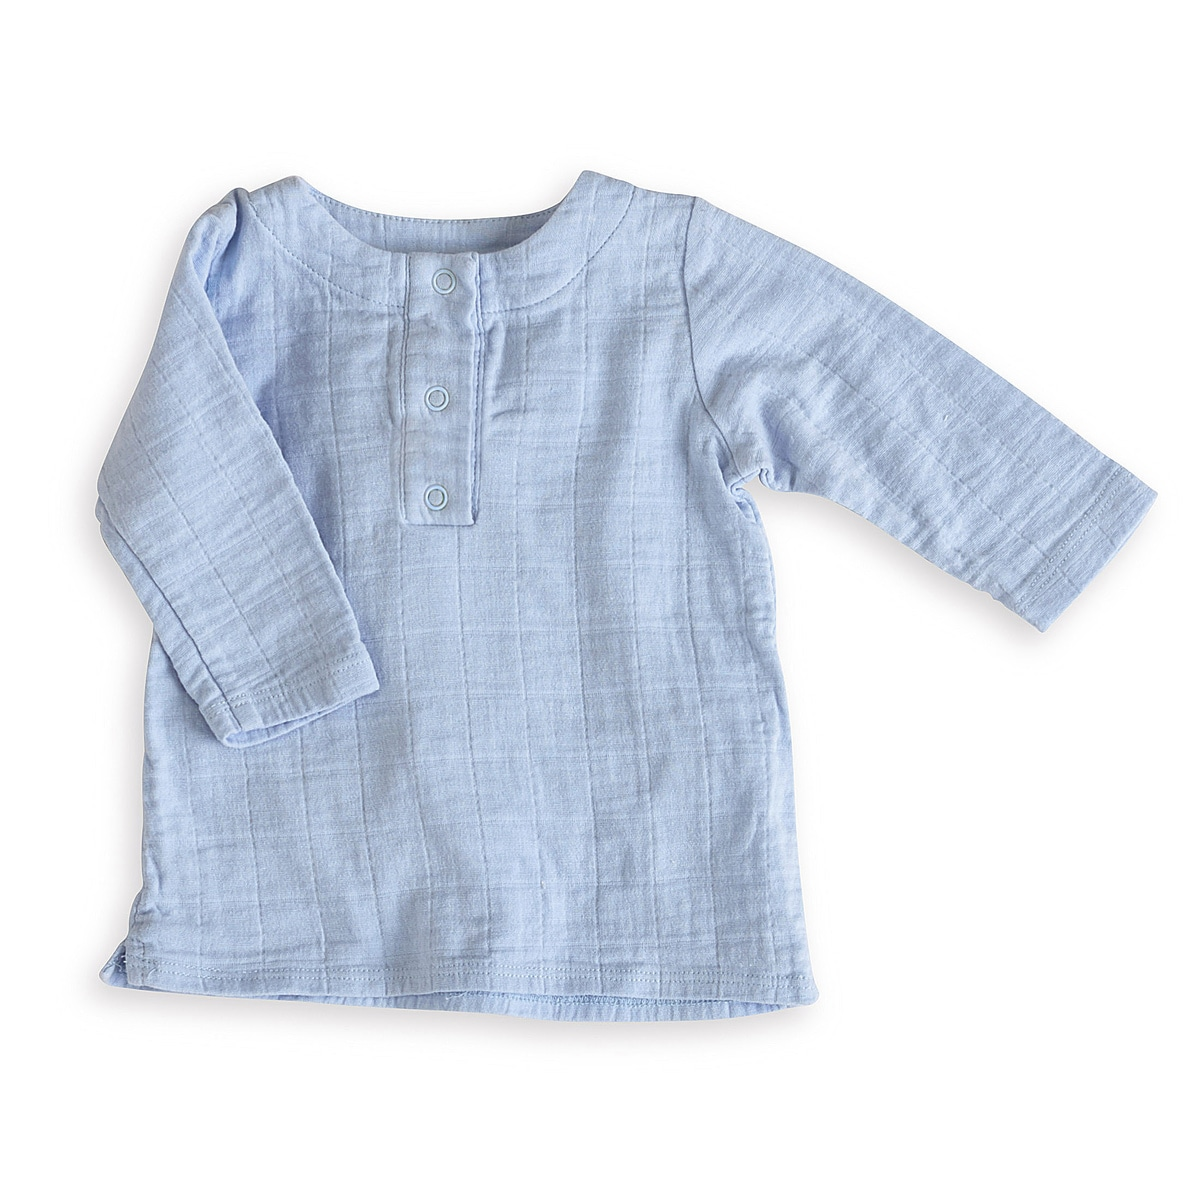 aden + anais Boys 3-6 Months Night Sky Blue Muslin Tunic Top